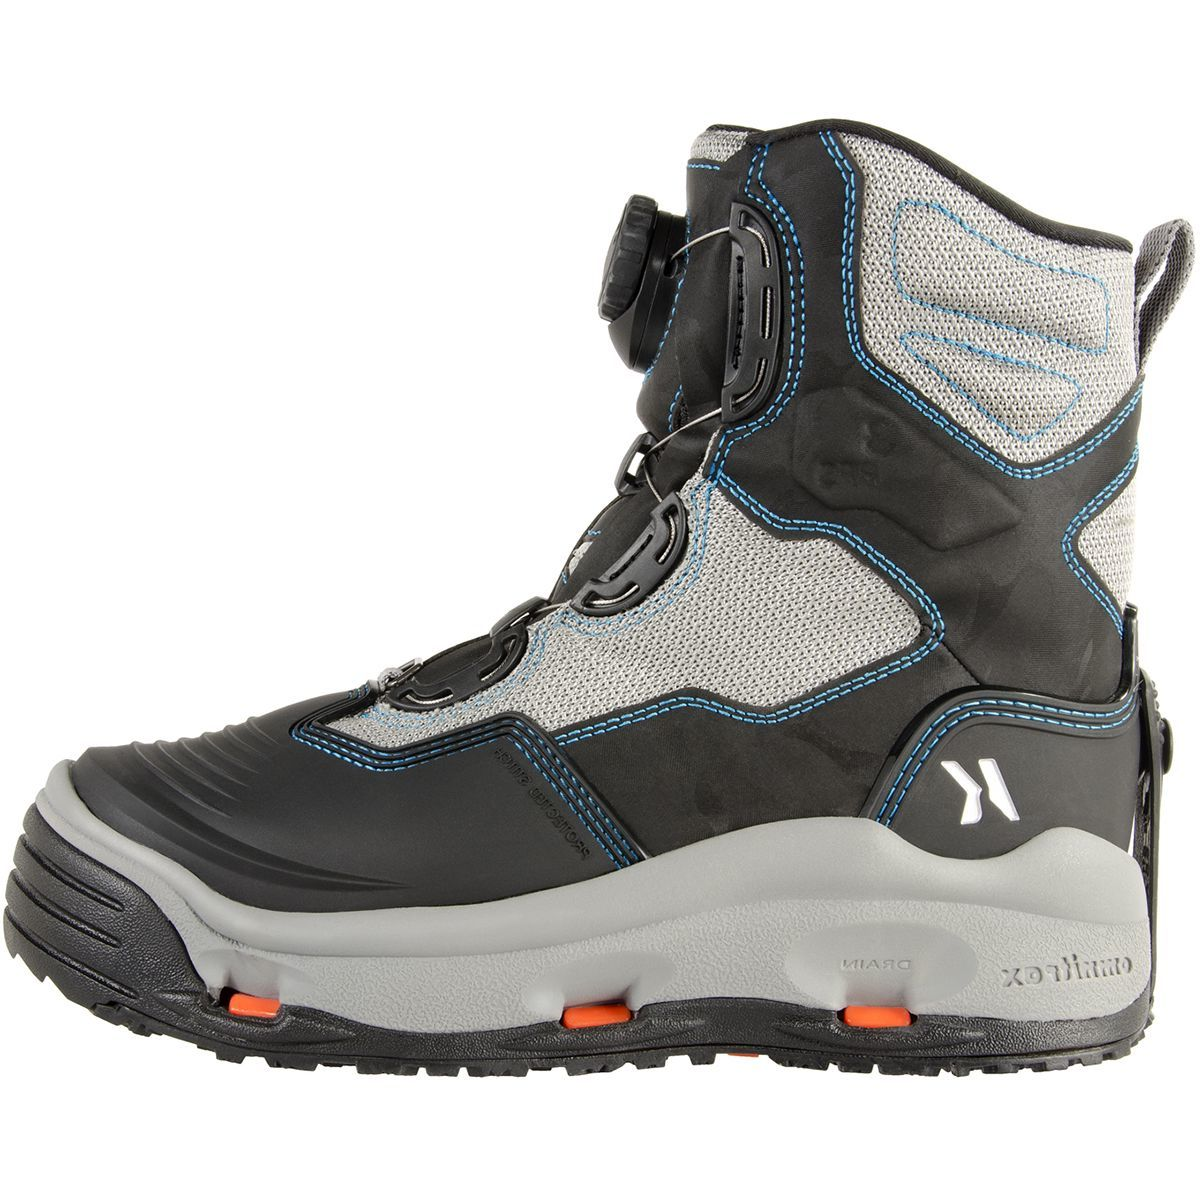 Korkers Darkhorse Wading Boot - Women's